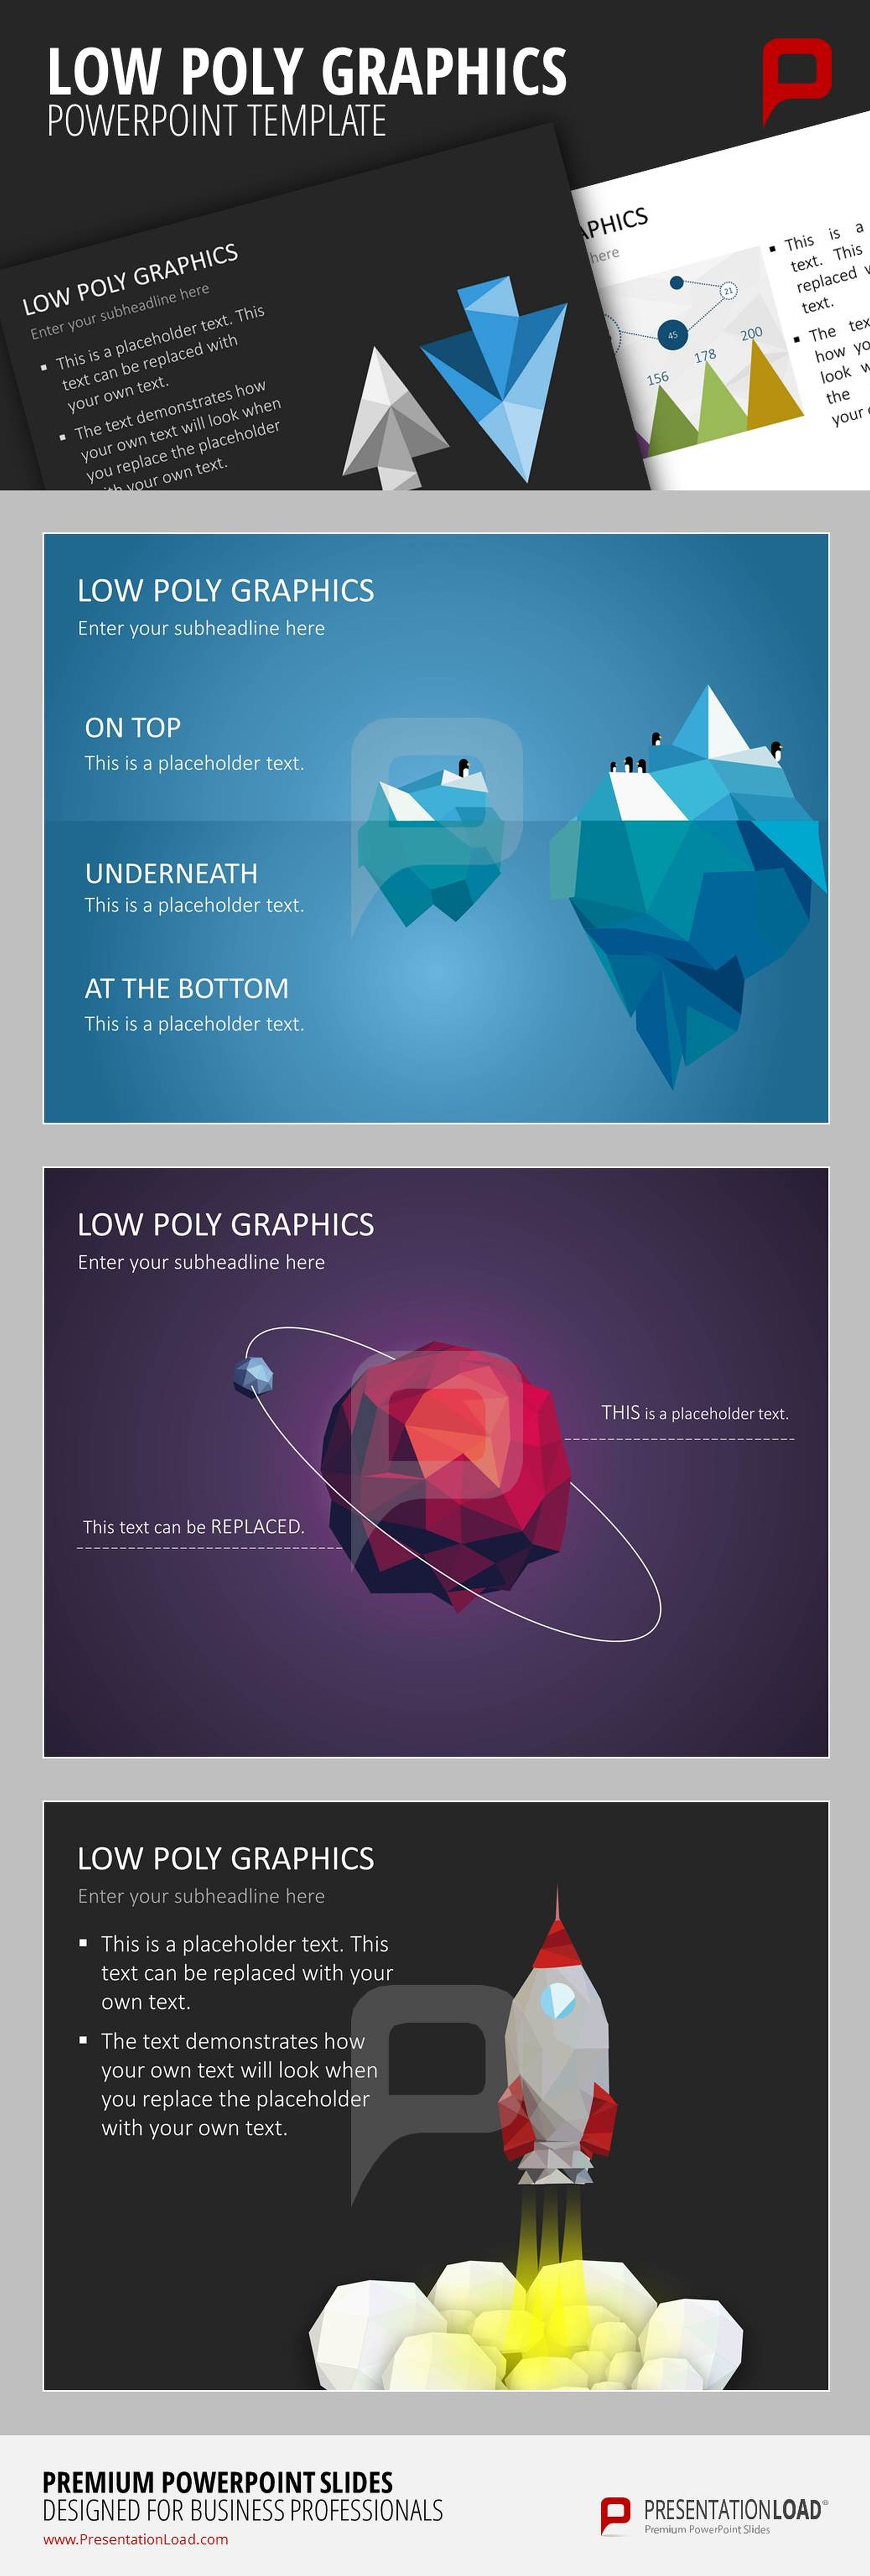 Get creative templates for your powerpoint presentation with the get creative templates for your powerpoint presentation with the low poly graphics simply fill in toneelgroepblik Gallery